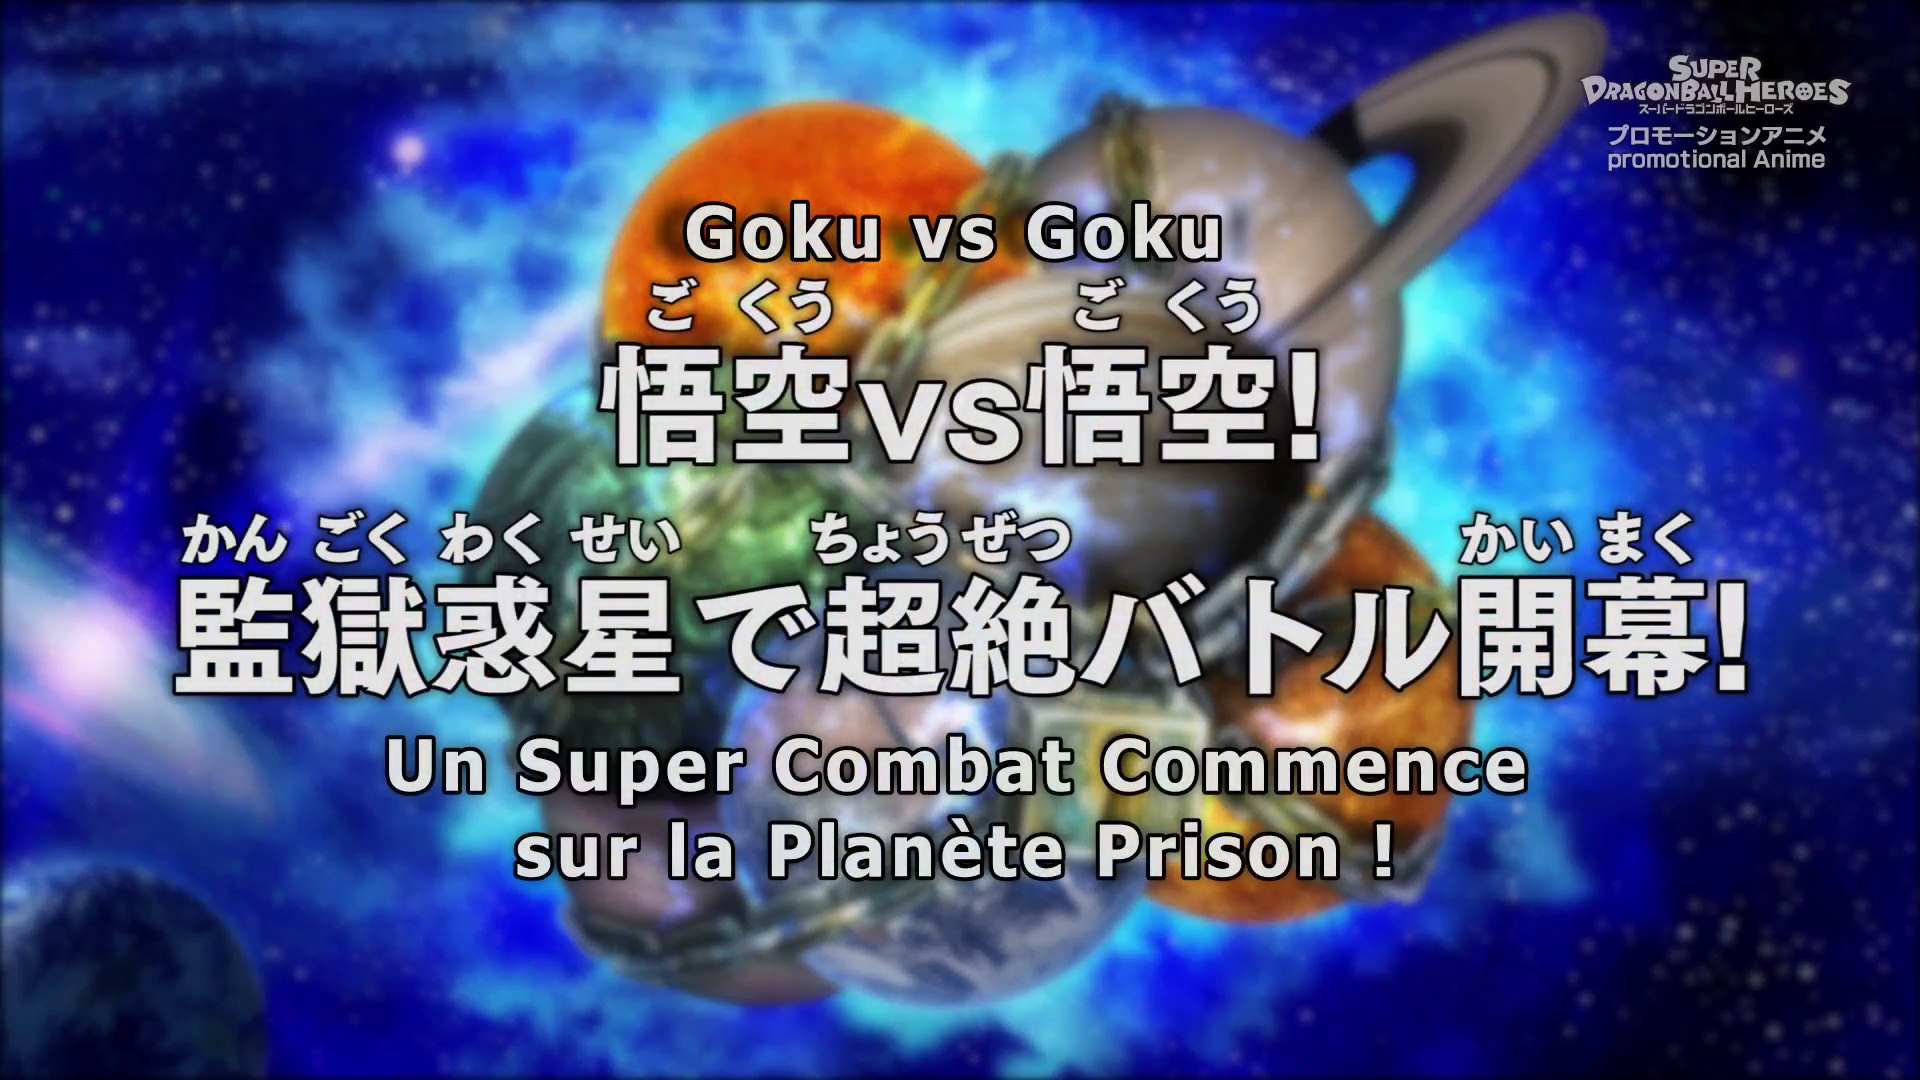 Fansub - Super Dragon Ball Heroes Episode 1 + Opening